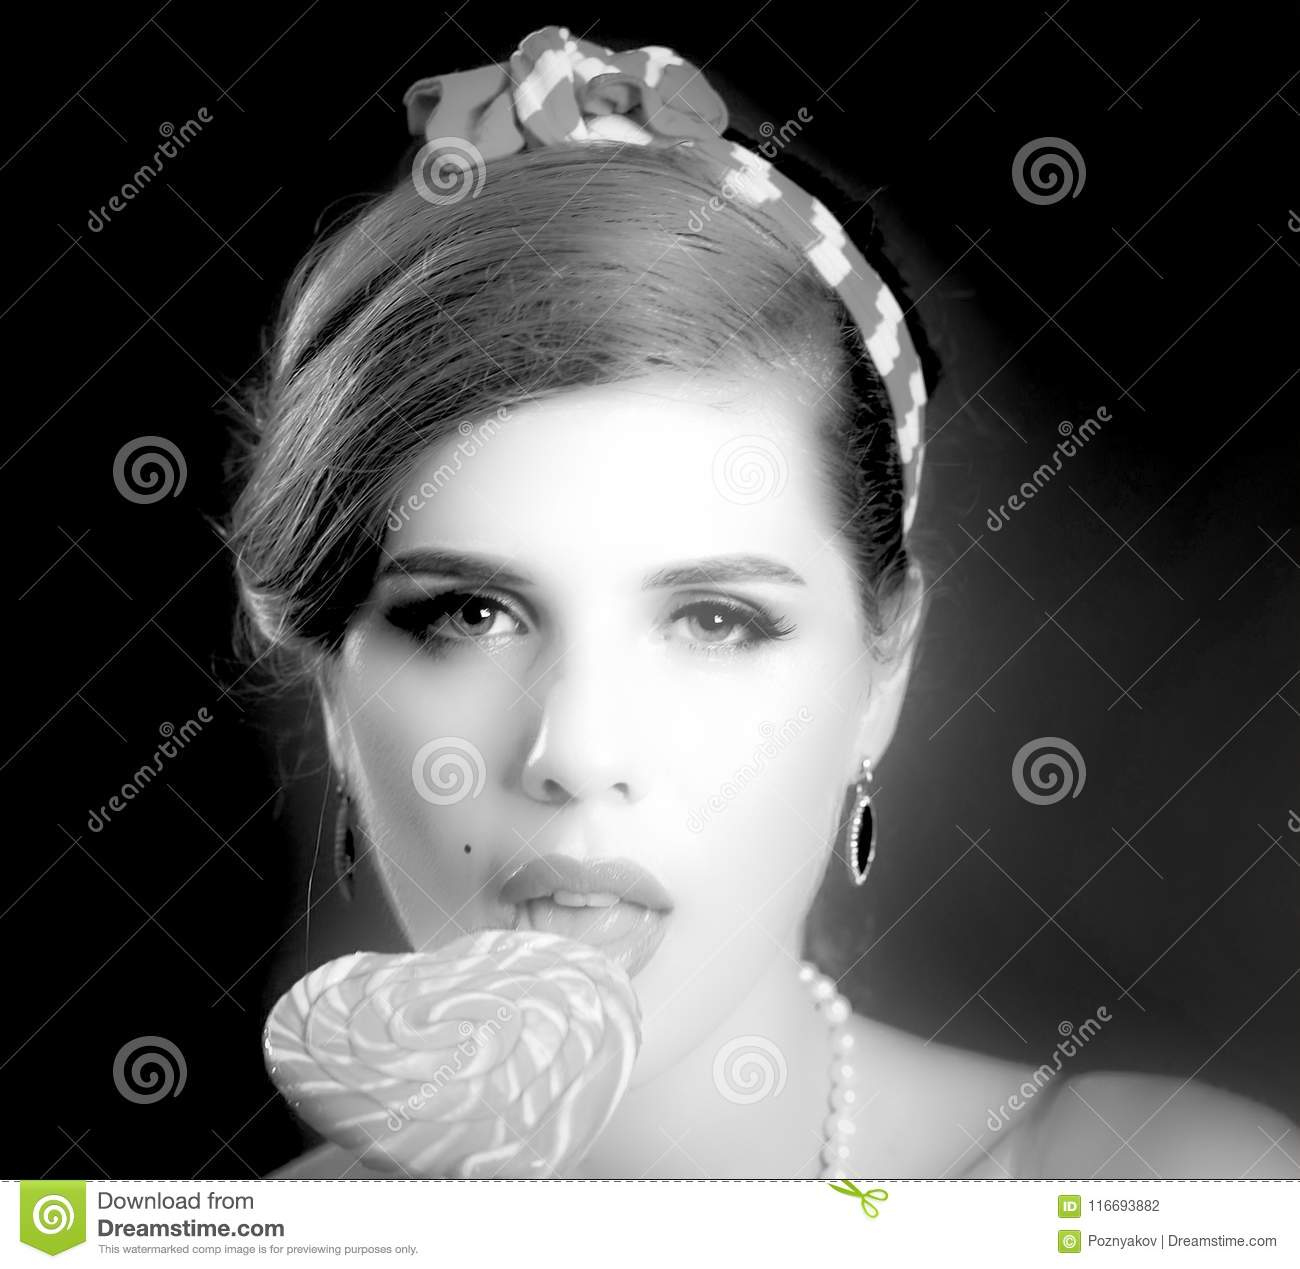 Woman eating lollipops. Girl in pin-up style hold striped candy.